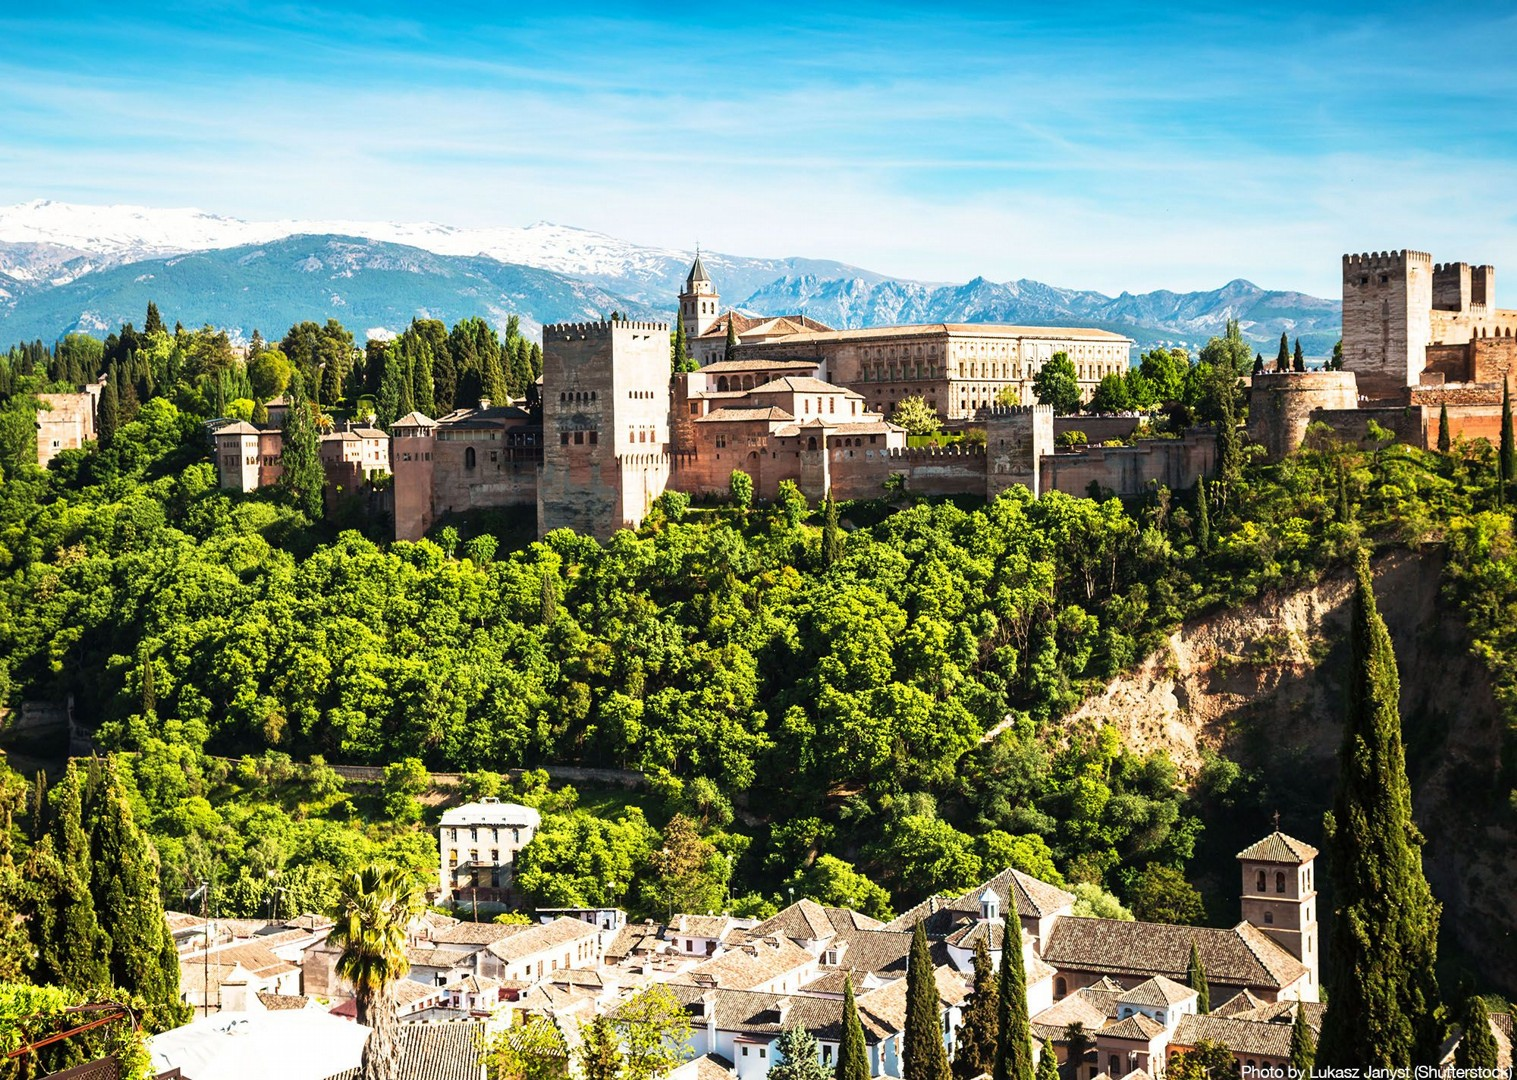 alhmabra-cycling-holiday-in-spain-granada-to-seville-leisure-cycling.jpg - Southern Spain - Granada to Seville - Self-Guided Leisure Cycling Holiday - Leisure Cycling